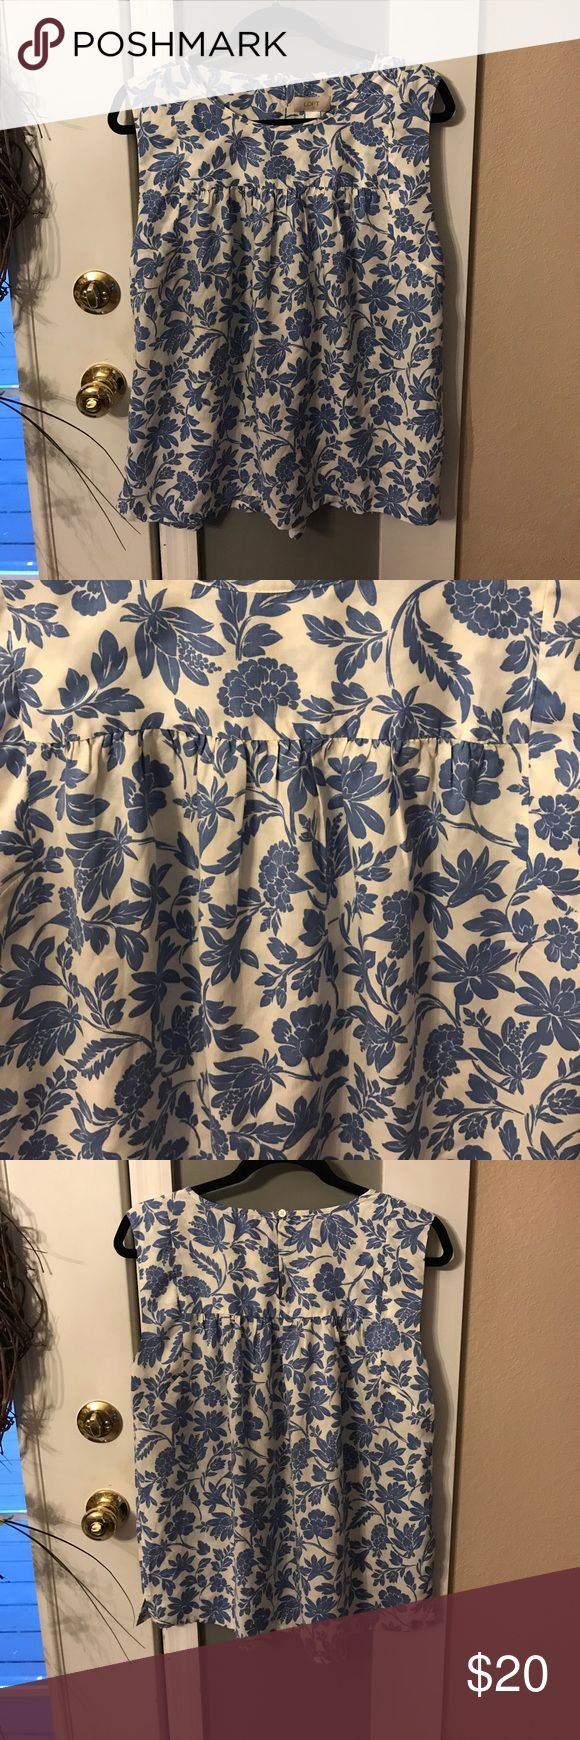 NWOT, Loft Blue & White Floral Top Never worn, excellent new condition. Pic of materials in photos. Measures approximately 21 inches in length and bust measures approximately 21 inches. Blue and white women's top. Tops Blouses